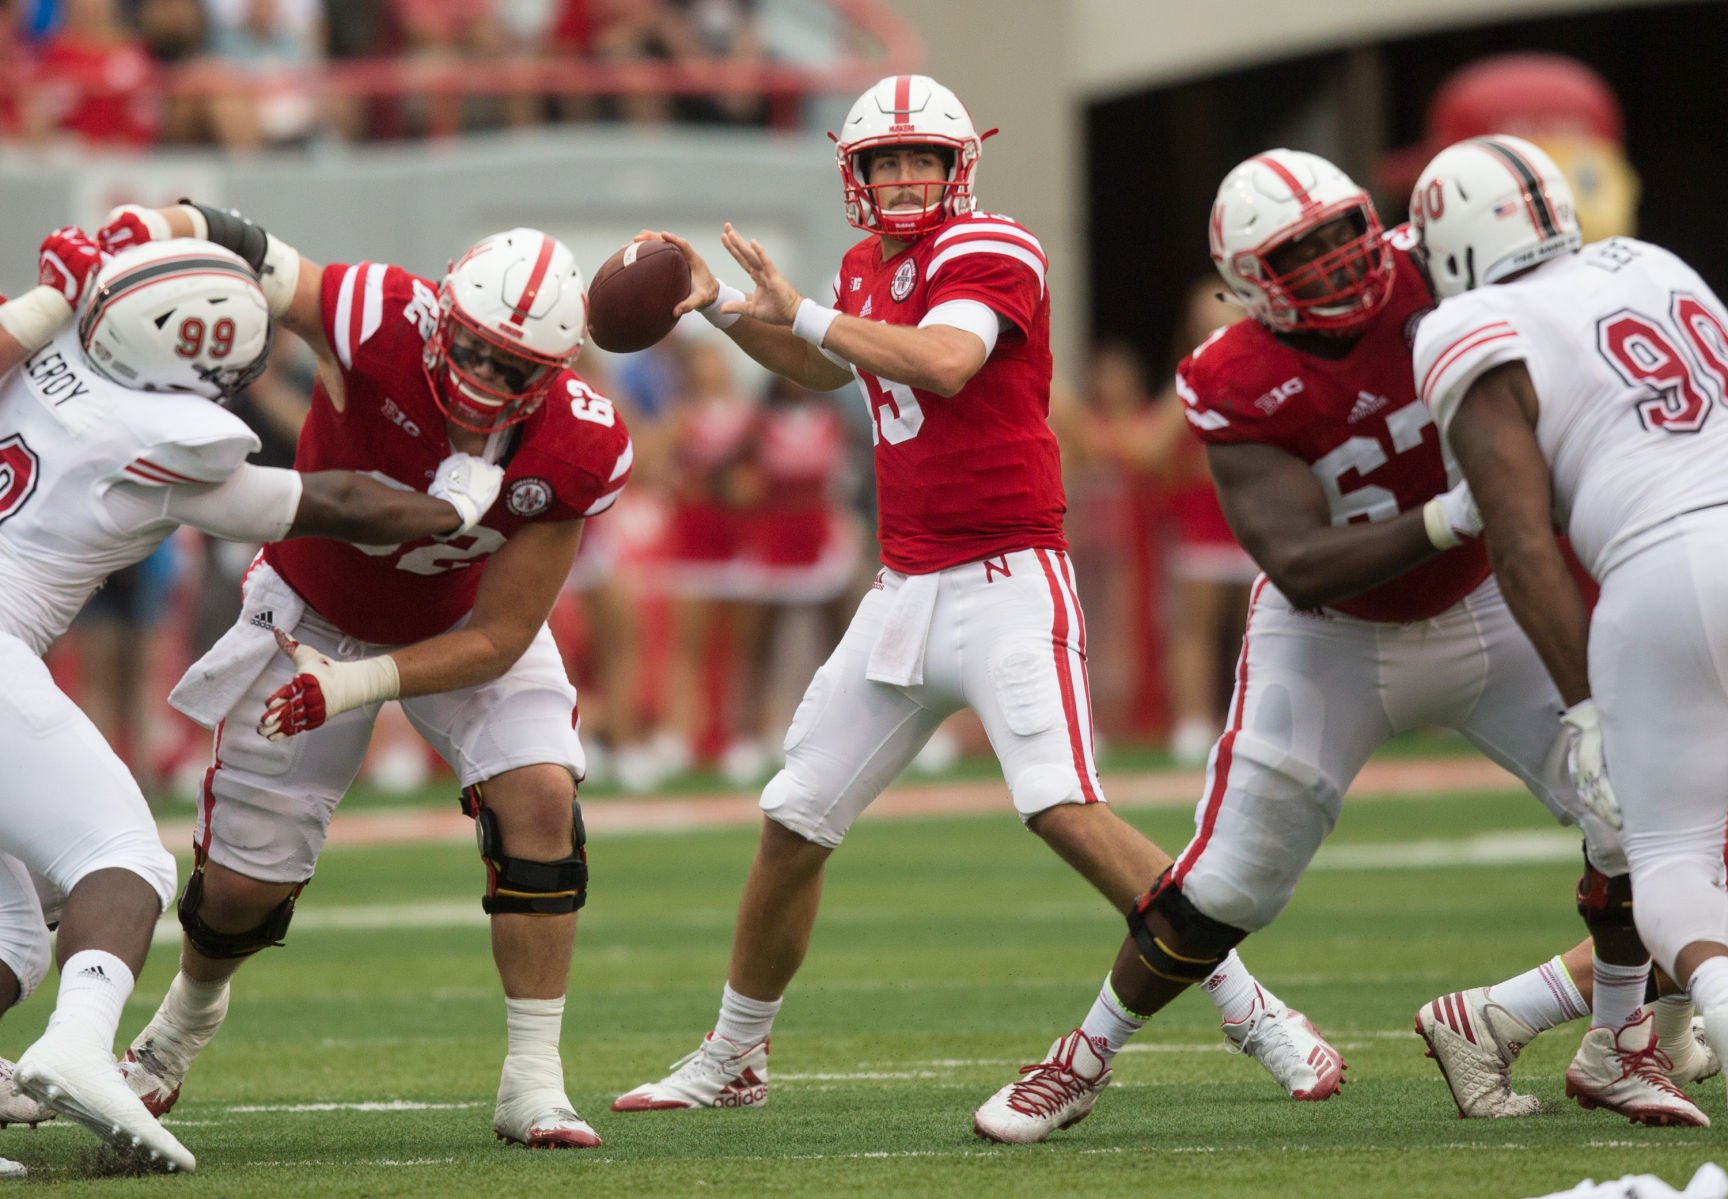 Rutgers fizzles after fast start in 27-17 loss to Nebraska